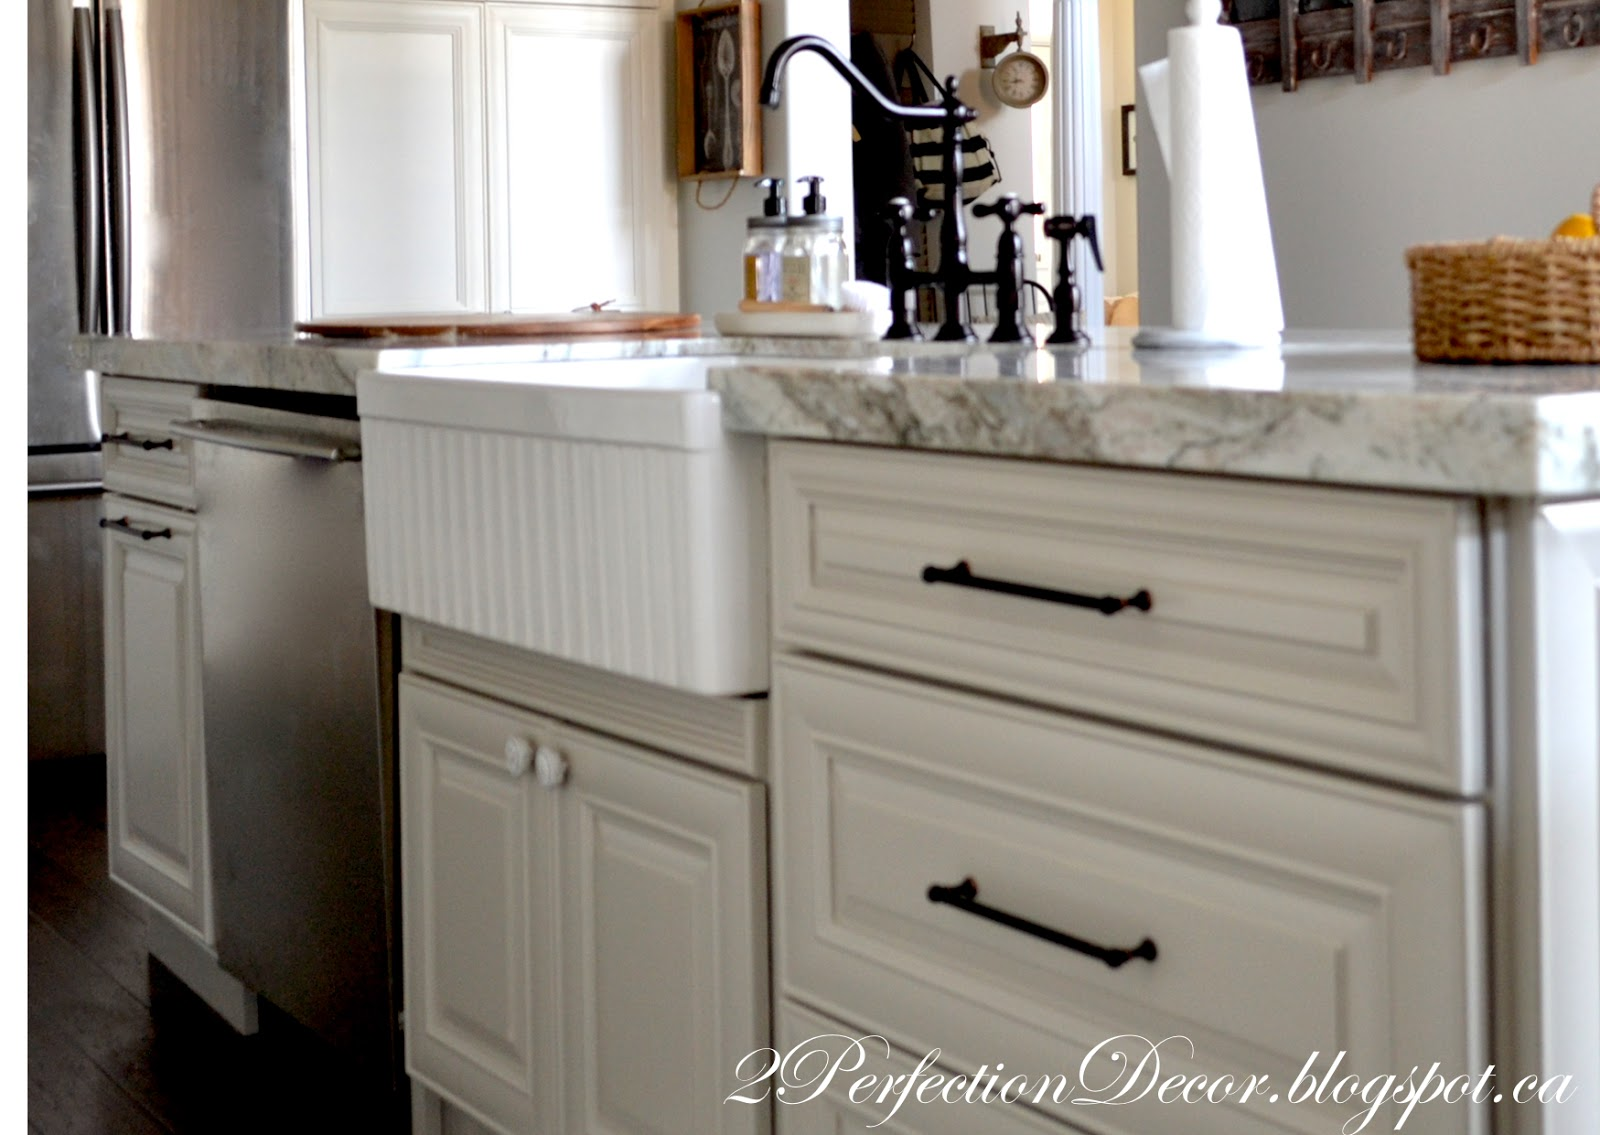 2perfection decor farmhouse kitchen reveal we stuck with the oil rubbed bronze for all of the hardware we re used our faucet from previous kitchen as it was fairly new and we loved the style